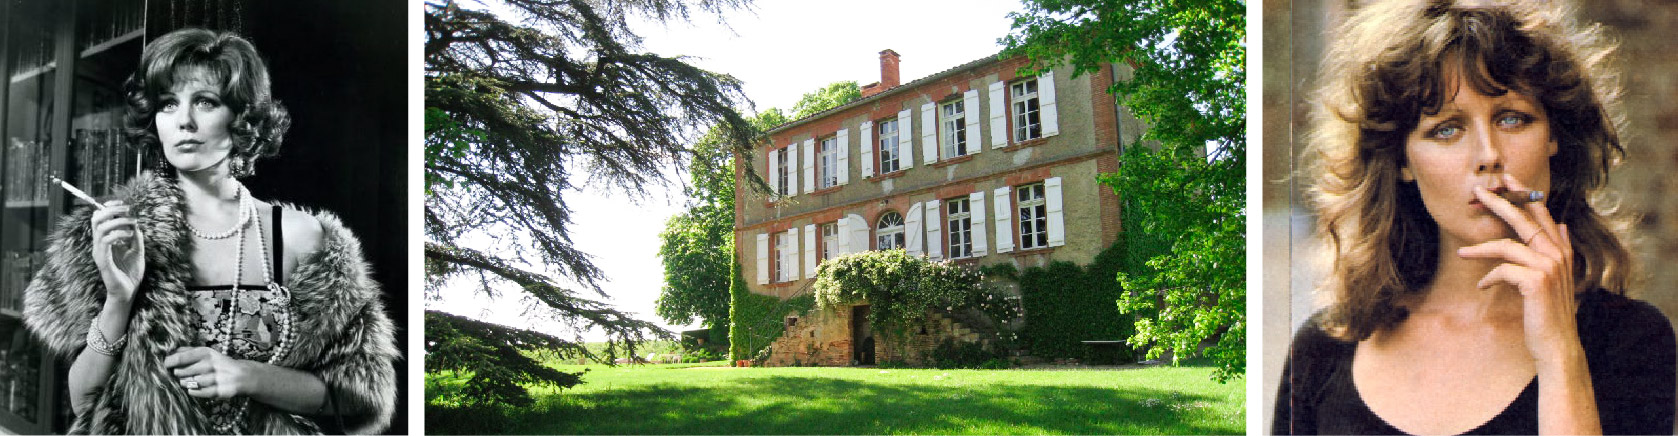 Fiona Lewis - Fiona's French Chateau